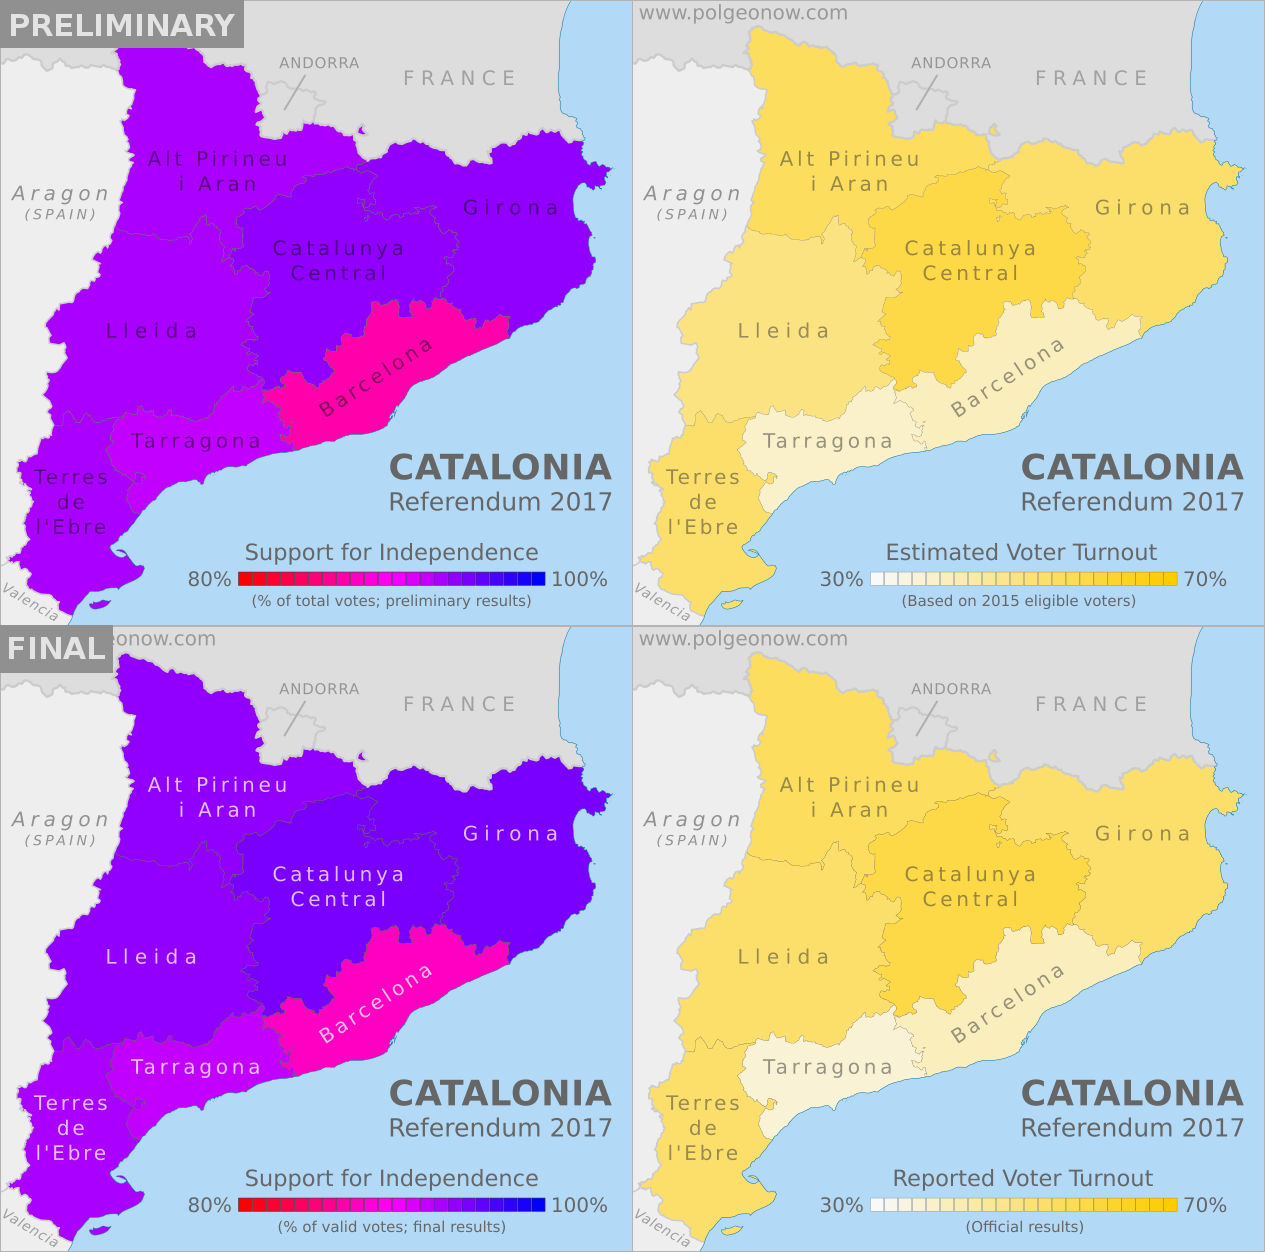 Catalunya Spain Map.Updated Catalonia Referendum Results Maps How Did Each Region Vote